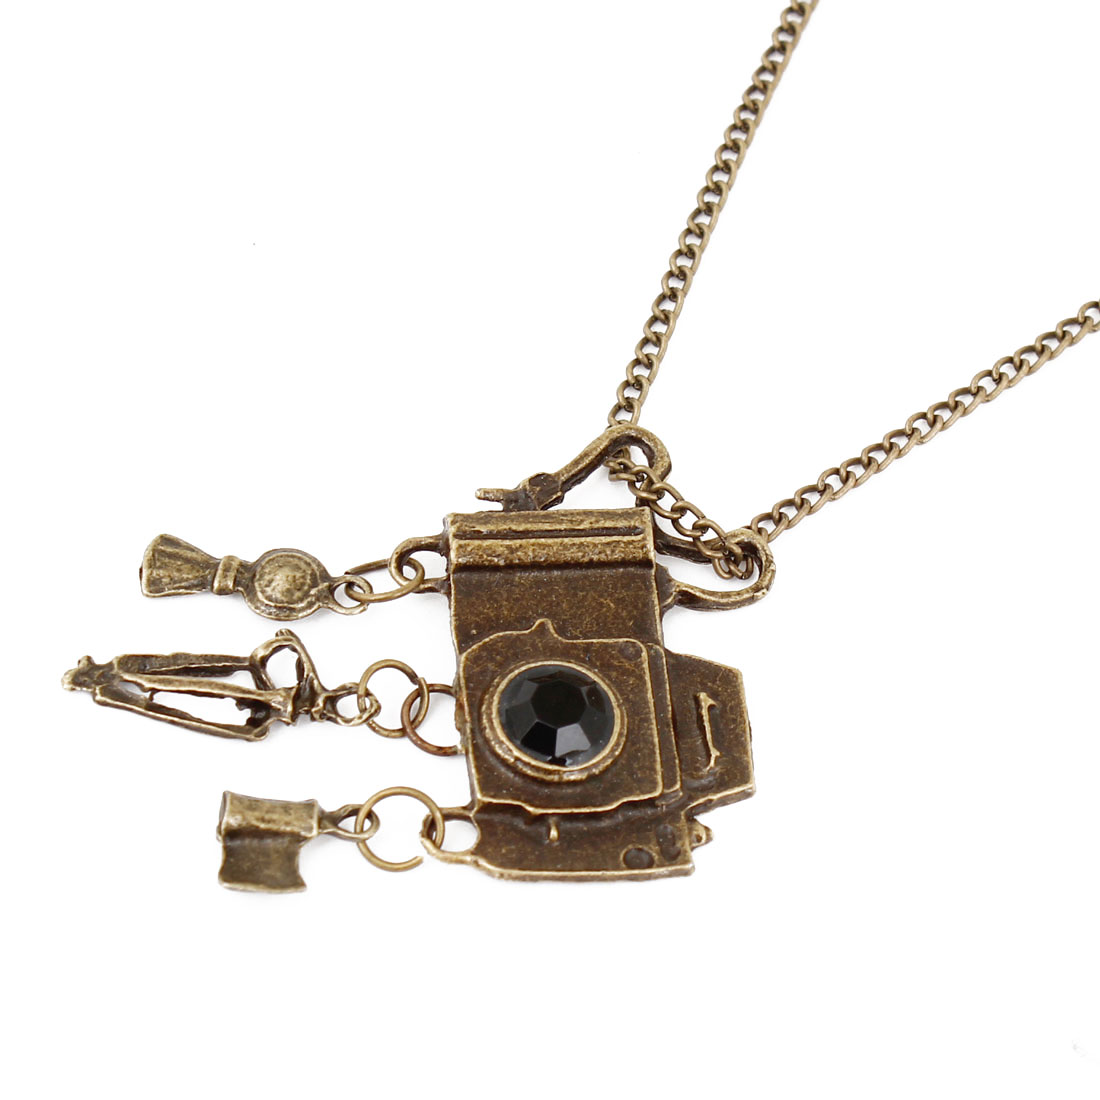 Lady Bronze Tone Metal Chain Camera Pendant Sweater Necklace Decoration